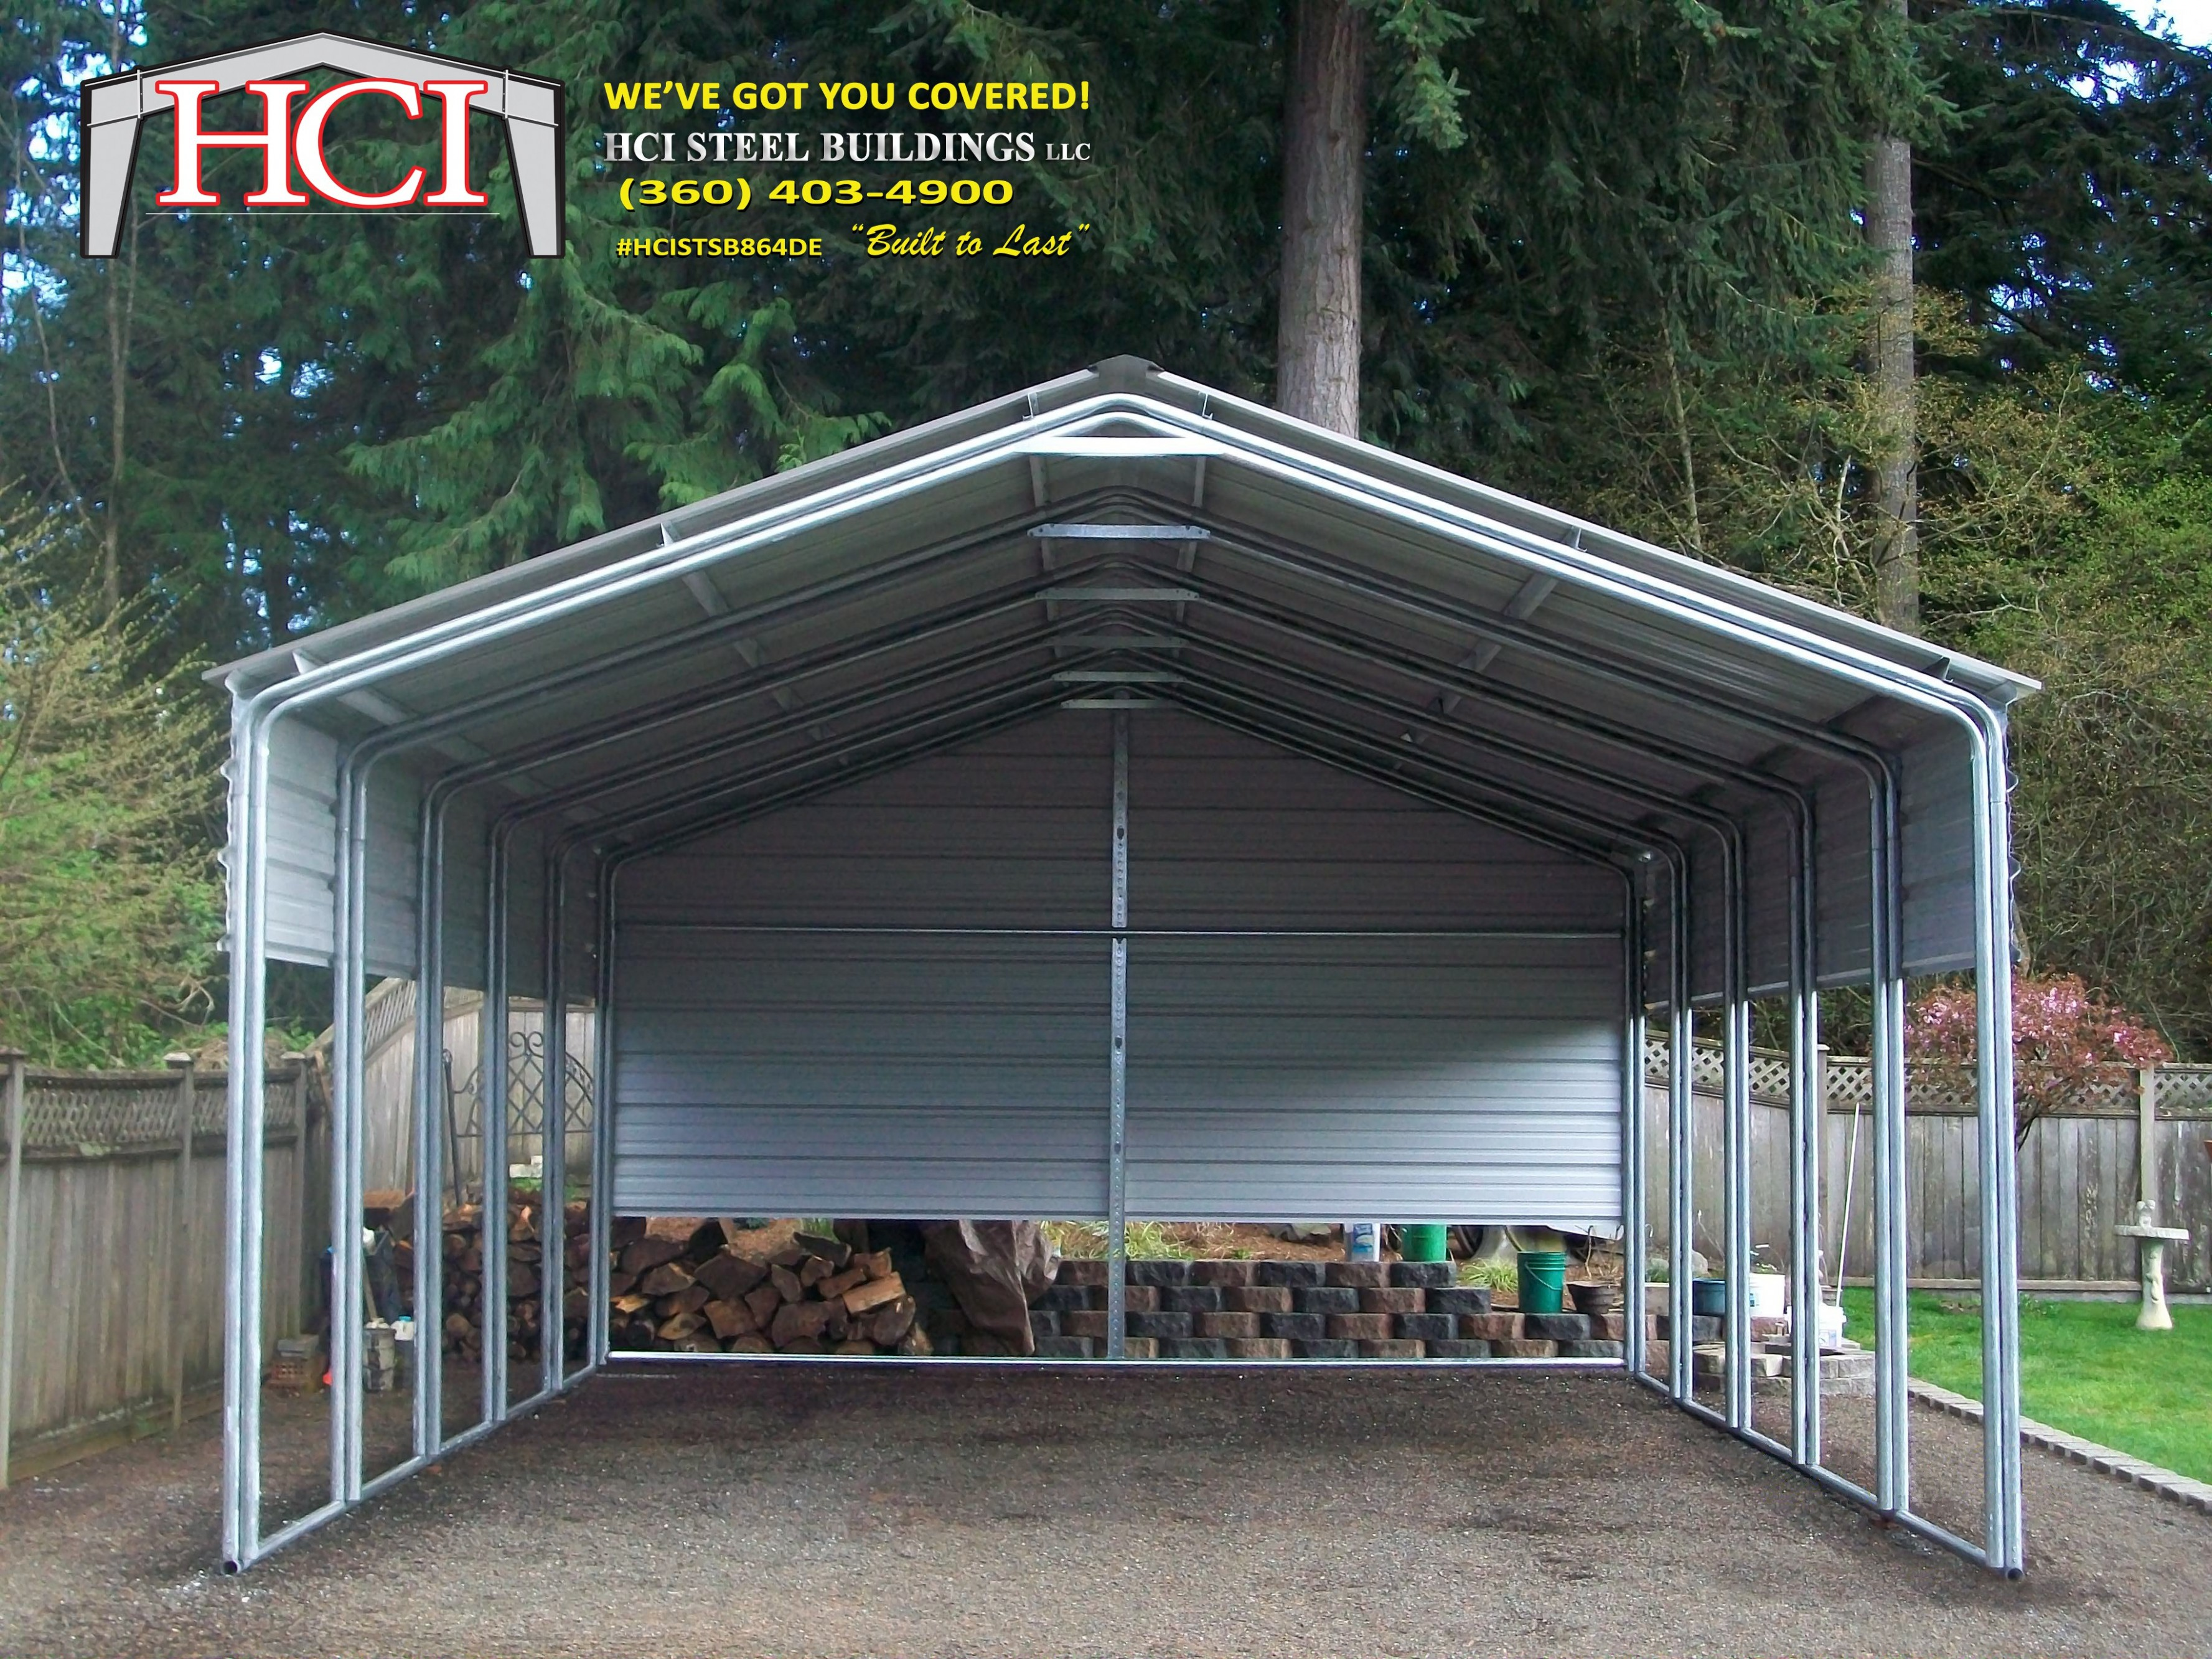 11 Things To Avoid In 11 Car Aluminum Carport | 11 car aluminum carport